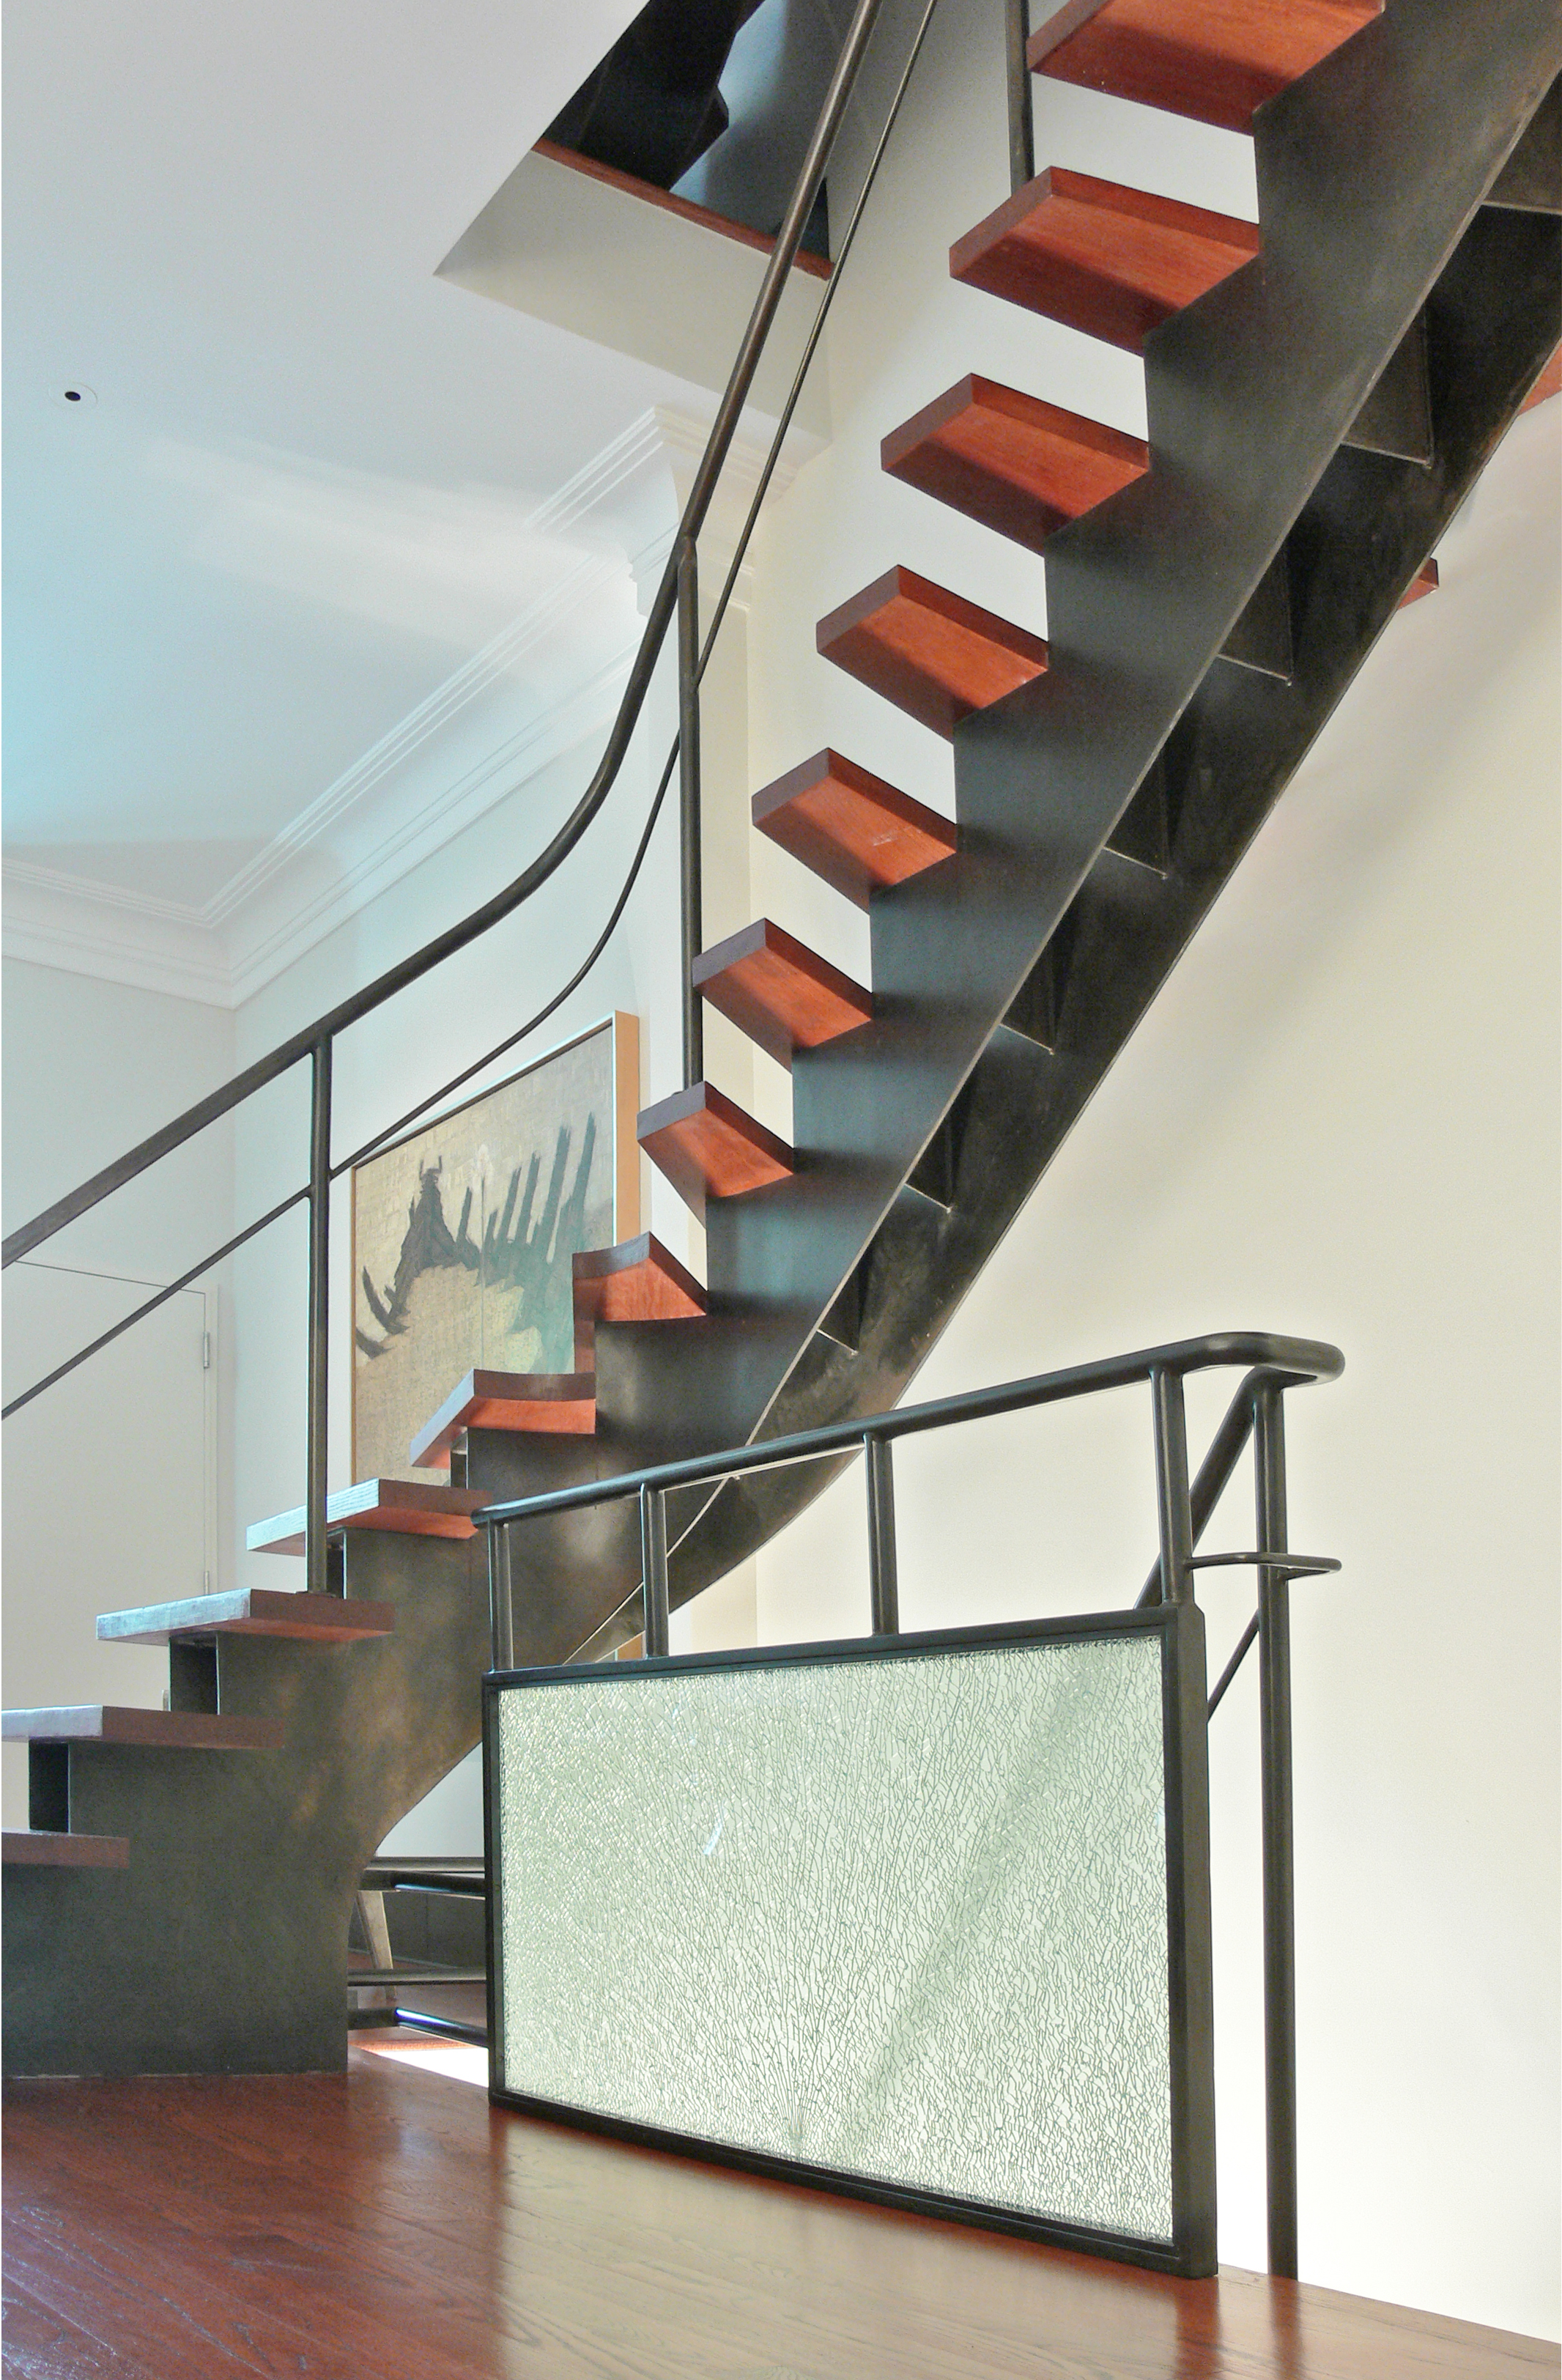 Modern residential architecture. The original stair was replaced with this sculptural blackened steel version. Shattered glass panel in the railing provides an unexpected textural complement.